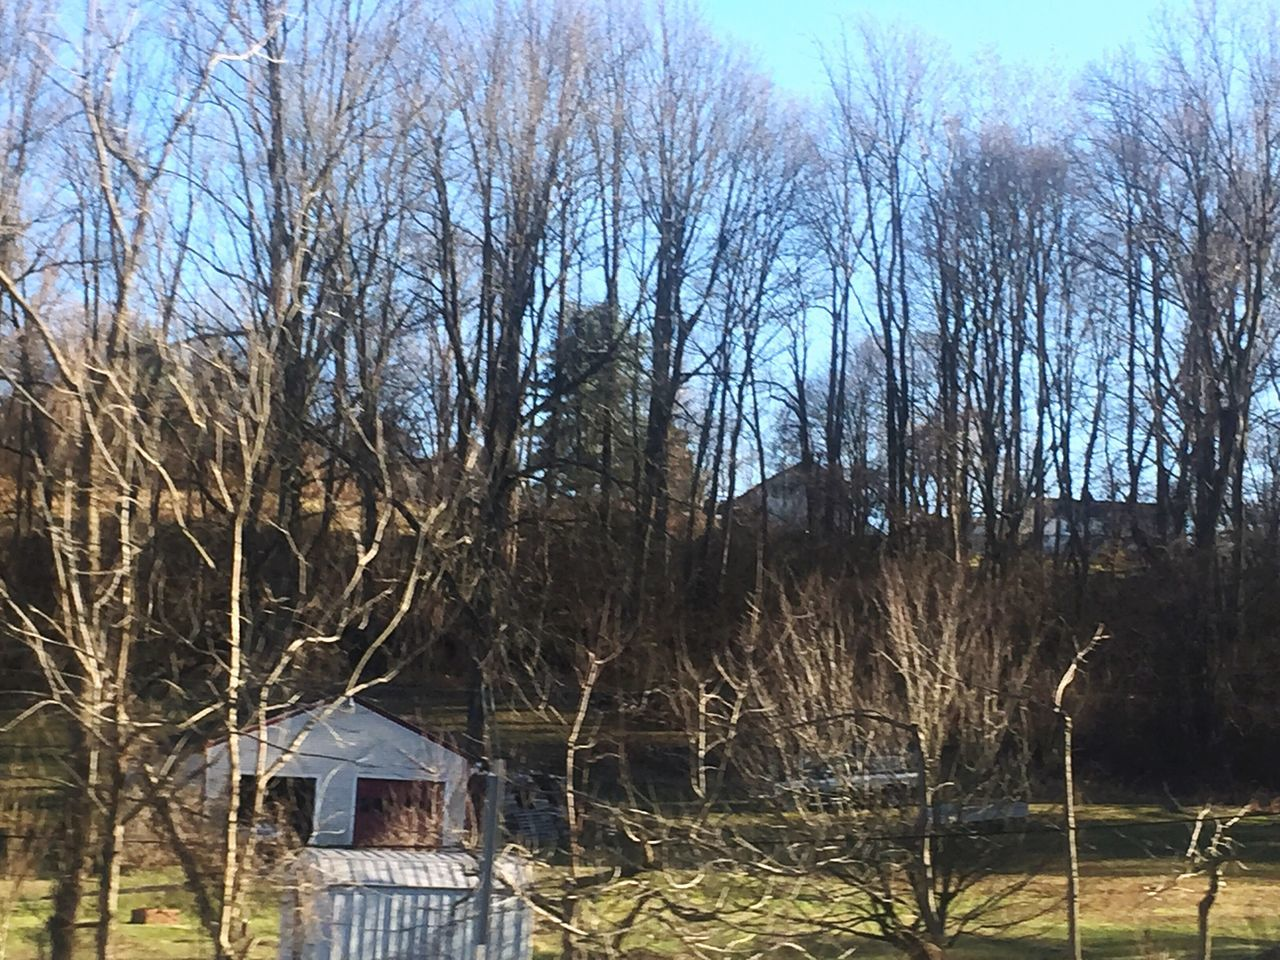 Bare Tree Tree Nature Sky Outdoors No People Day Built Structure Building Exterior Tranquility Branch Architecture Beauty In Nature Chester Springs Pennsylvania Beauty In Nature Landscape Tranquility Beauty Of Decay